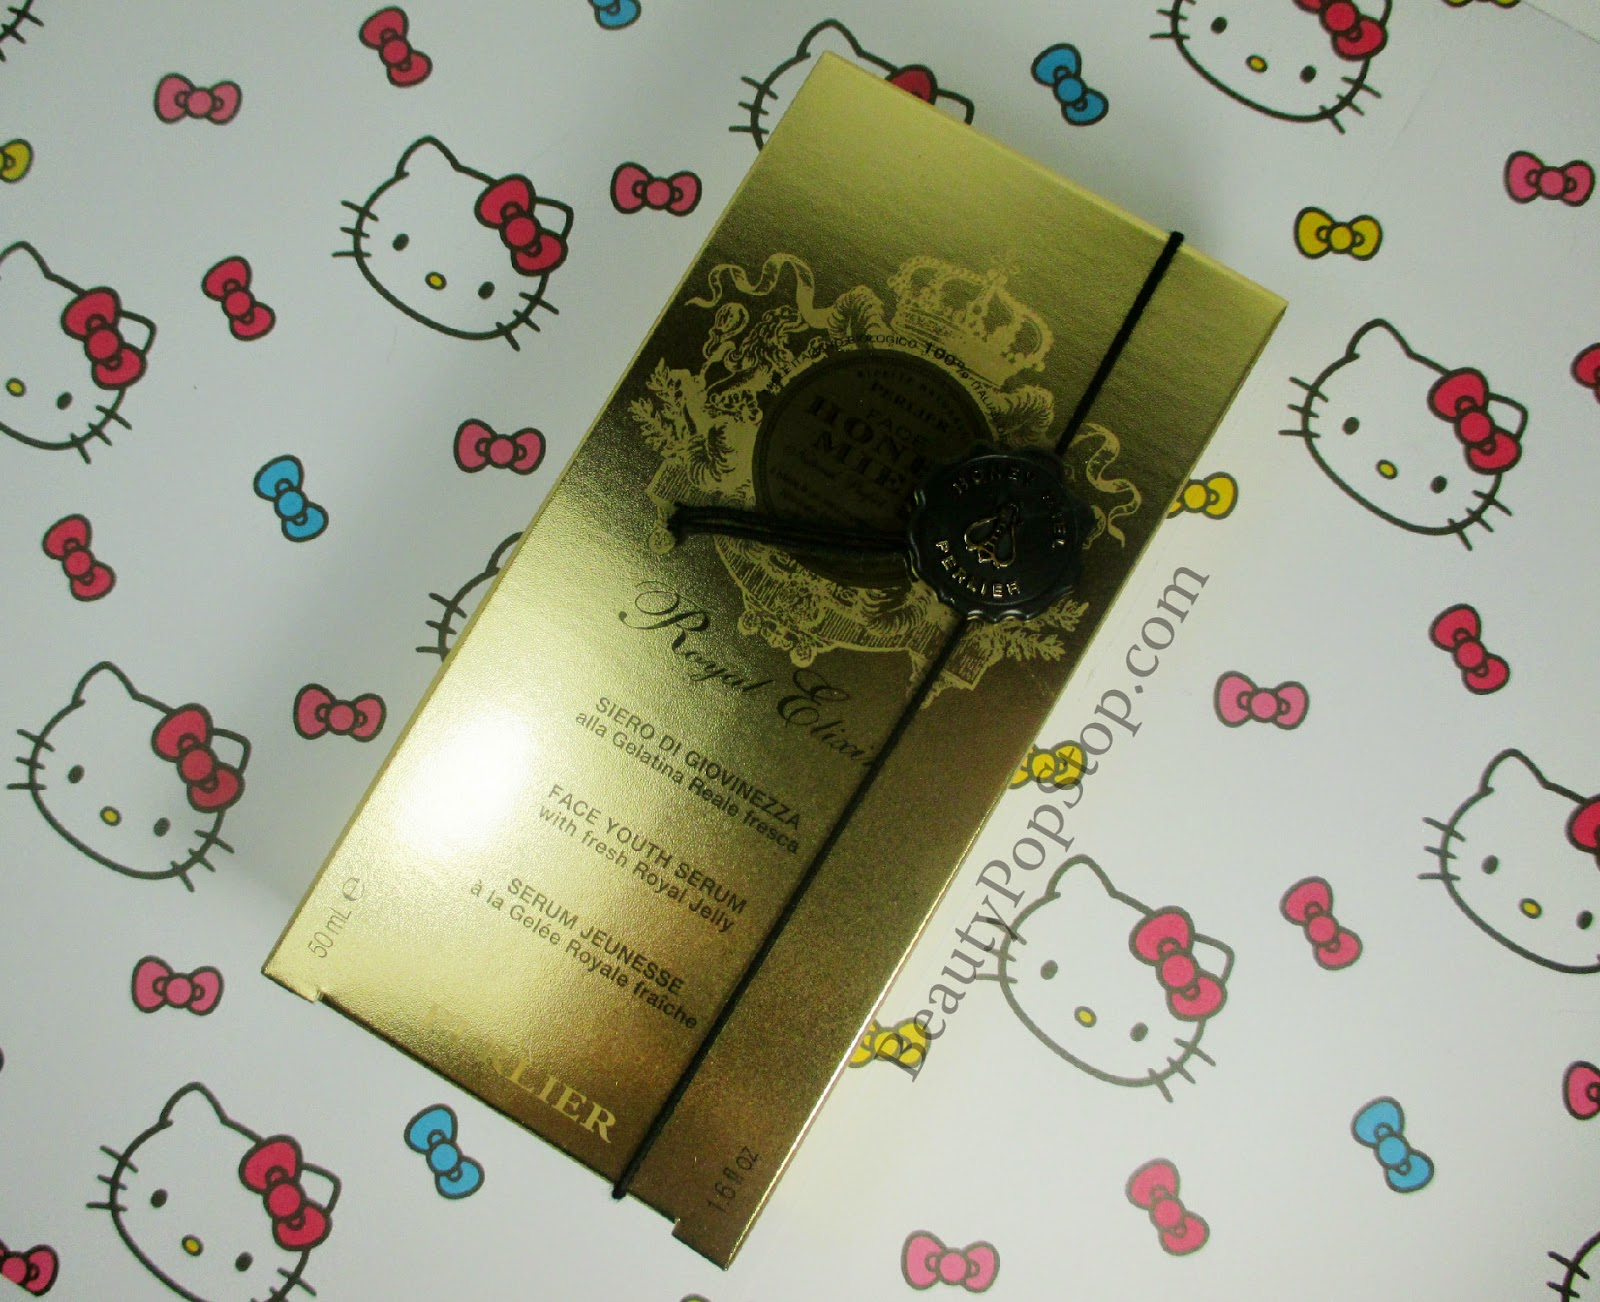 perlier royal elixir face youth serum review